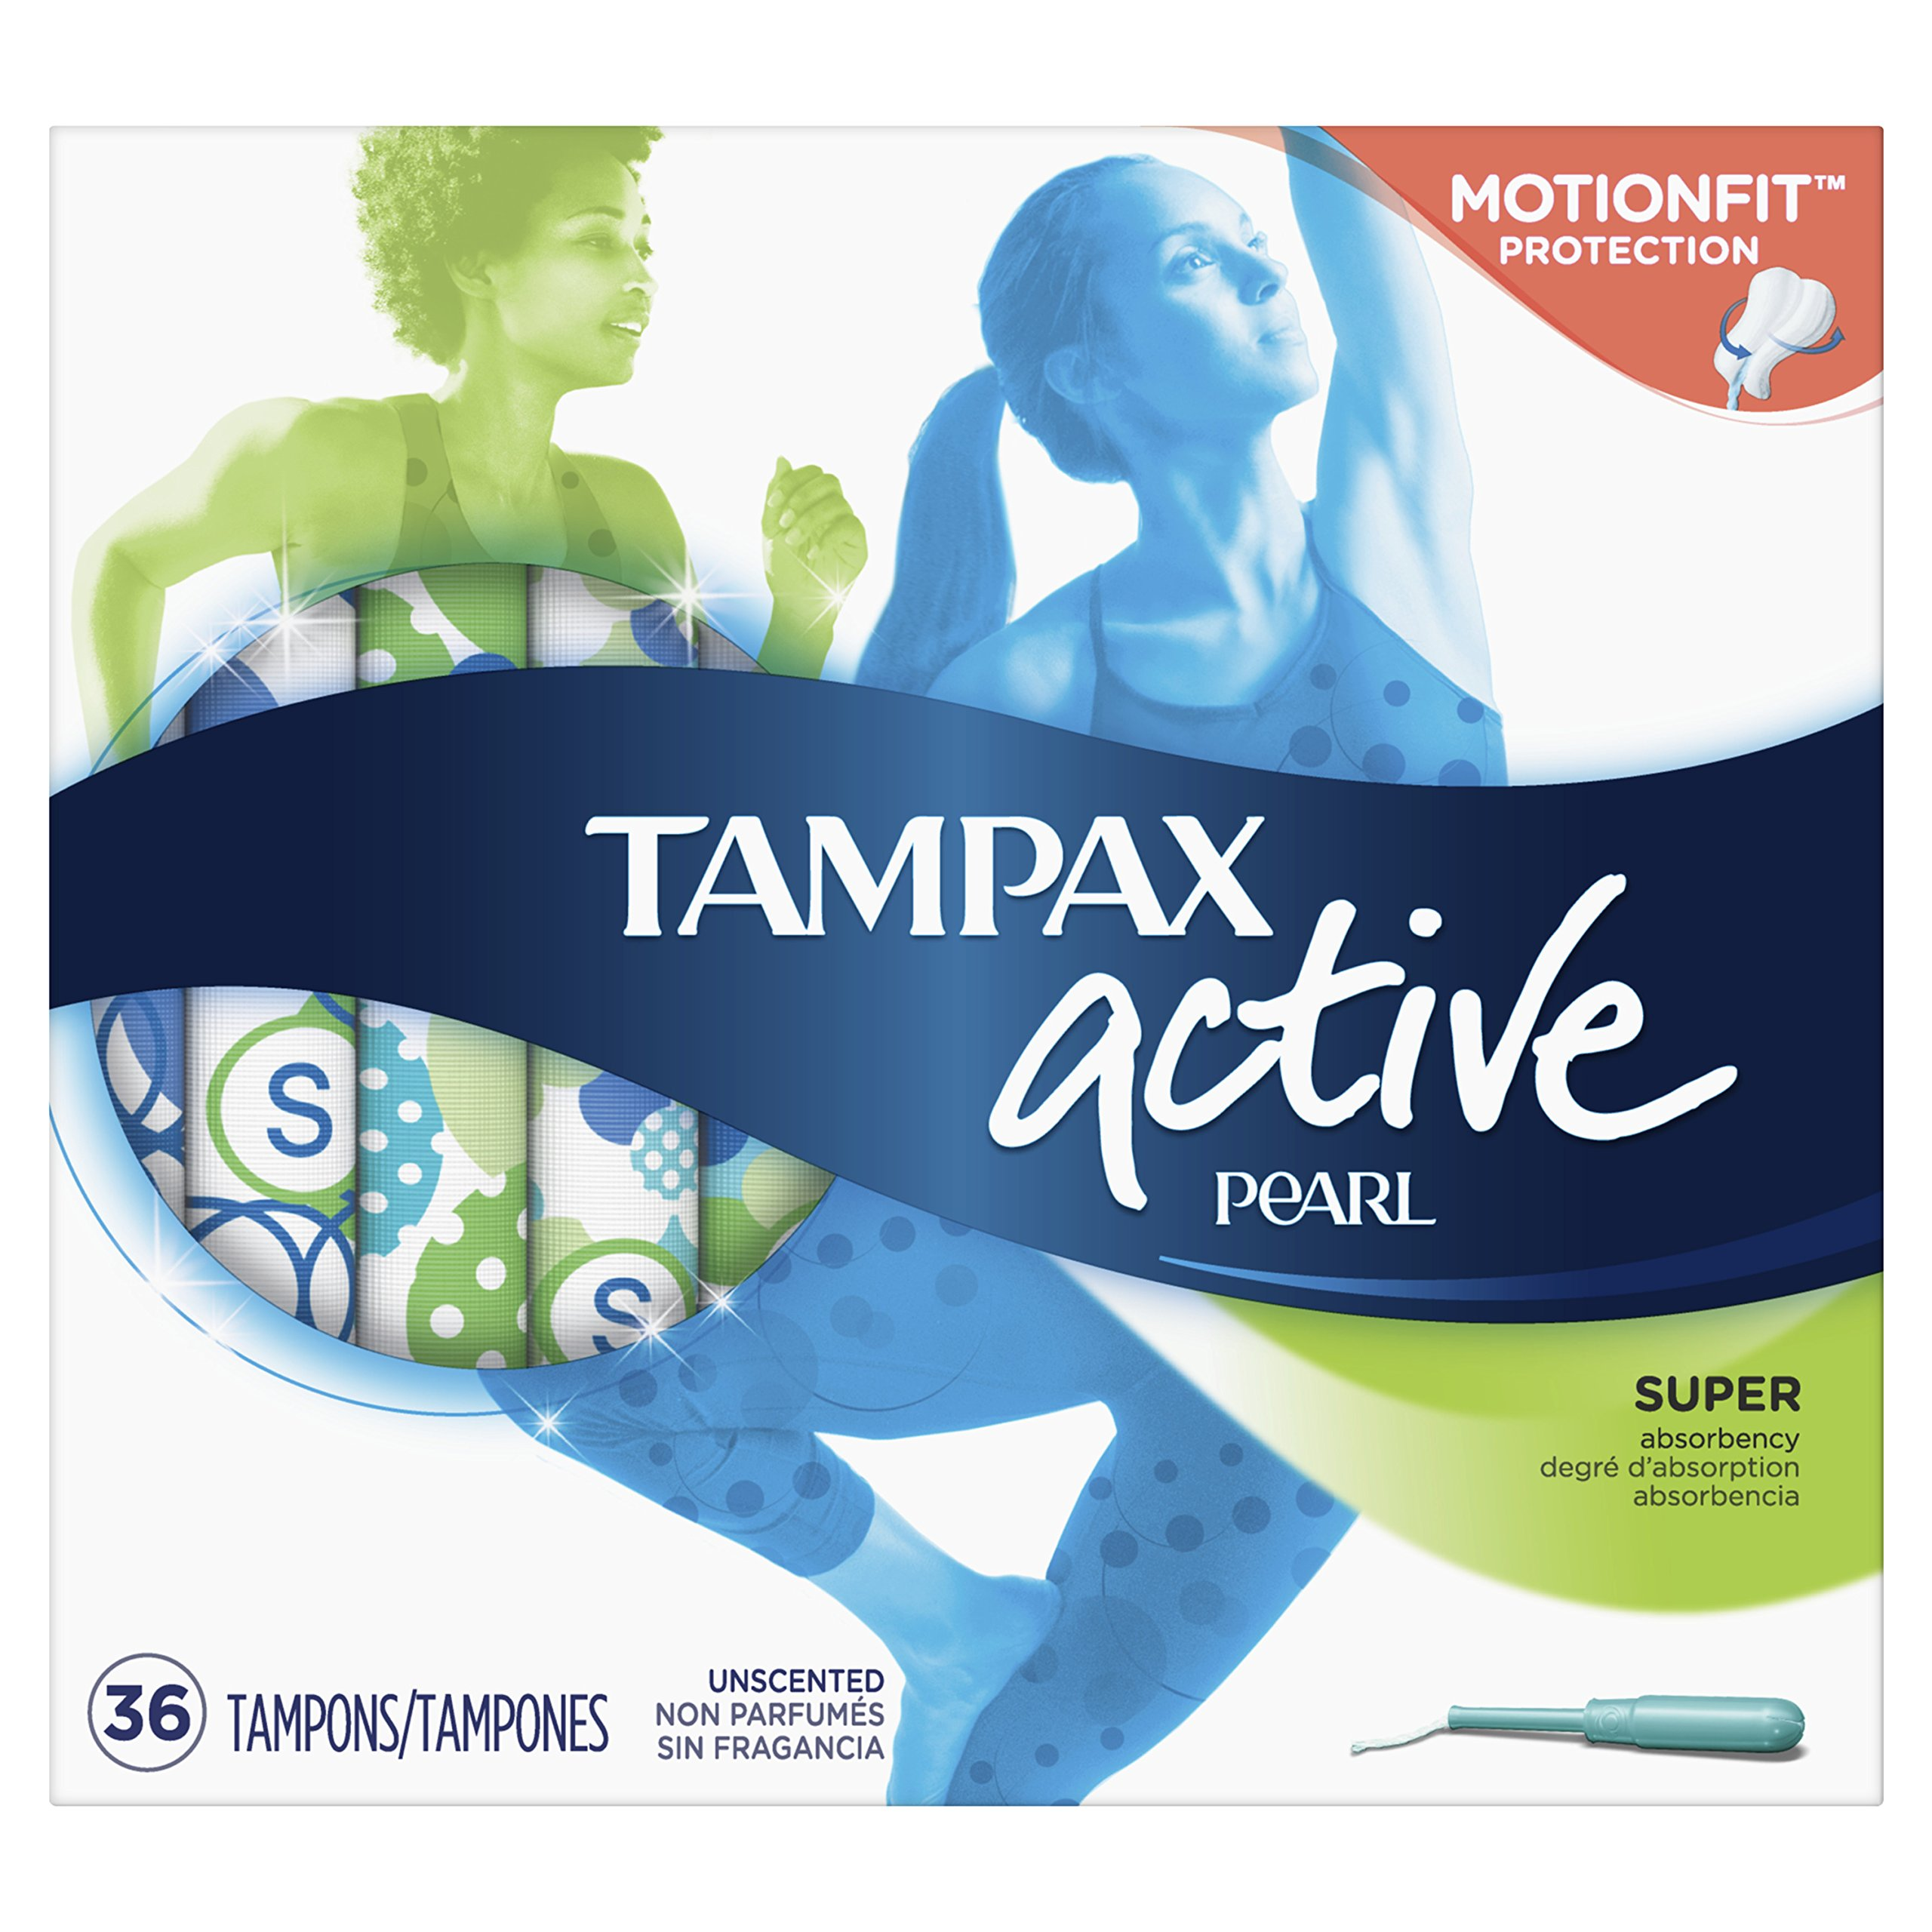 Tampax Pearl Active Tampons with Plastic Applicator, Super Absorbency, Unscented, 36 Count - Pack of 6 (216 Count Total) (Packaging May Vary) by Tampax